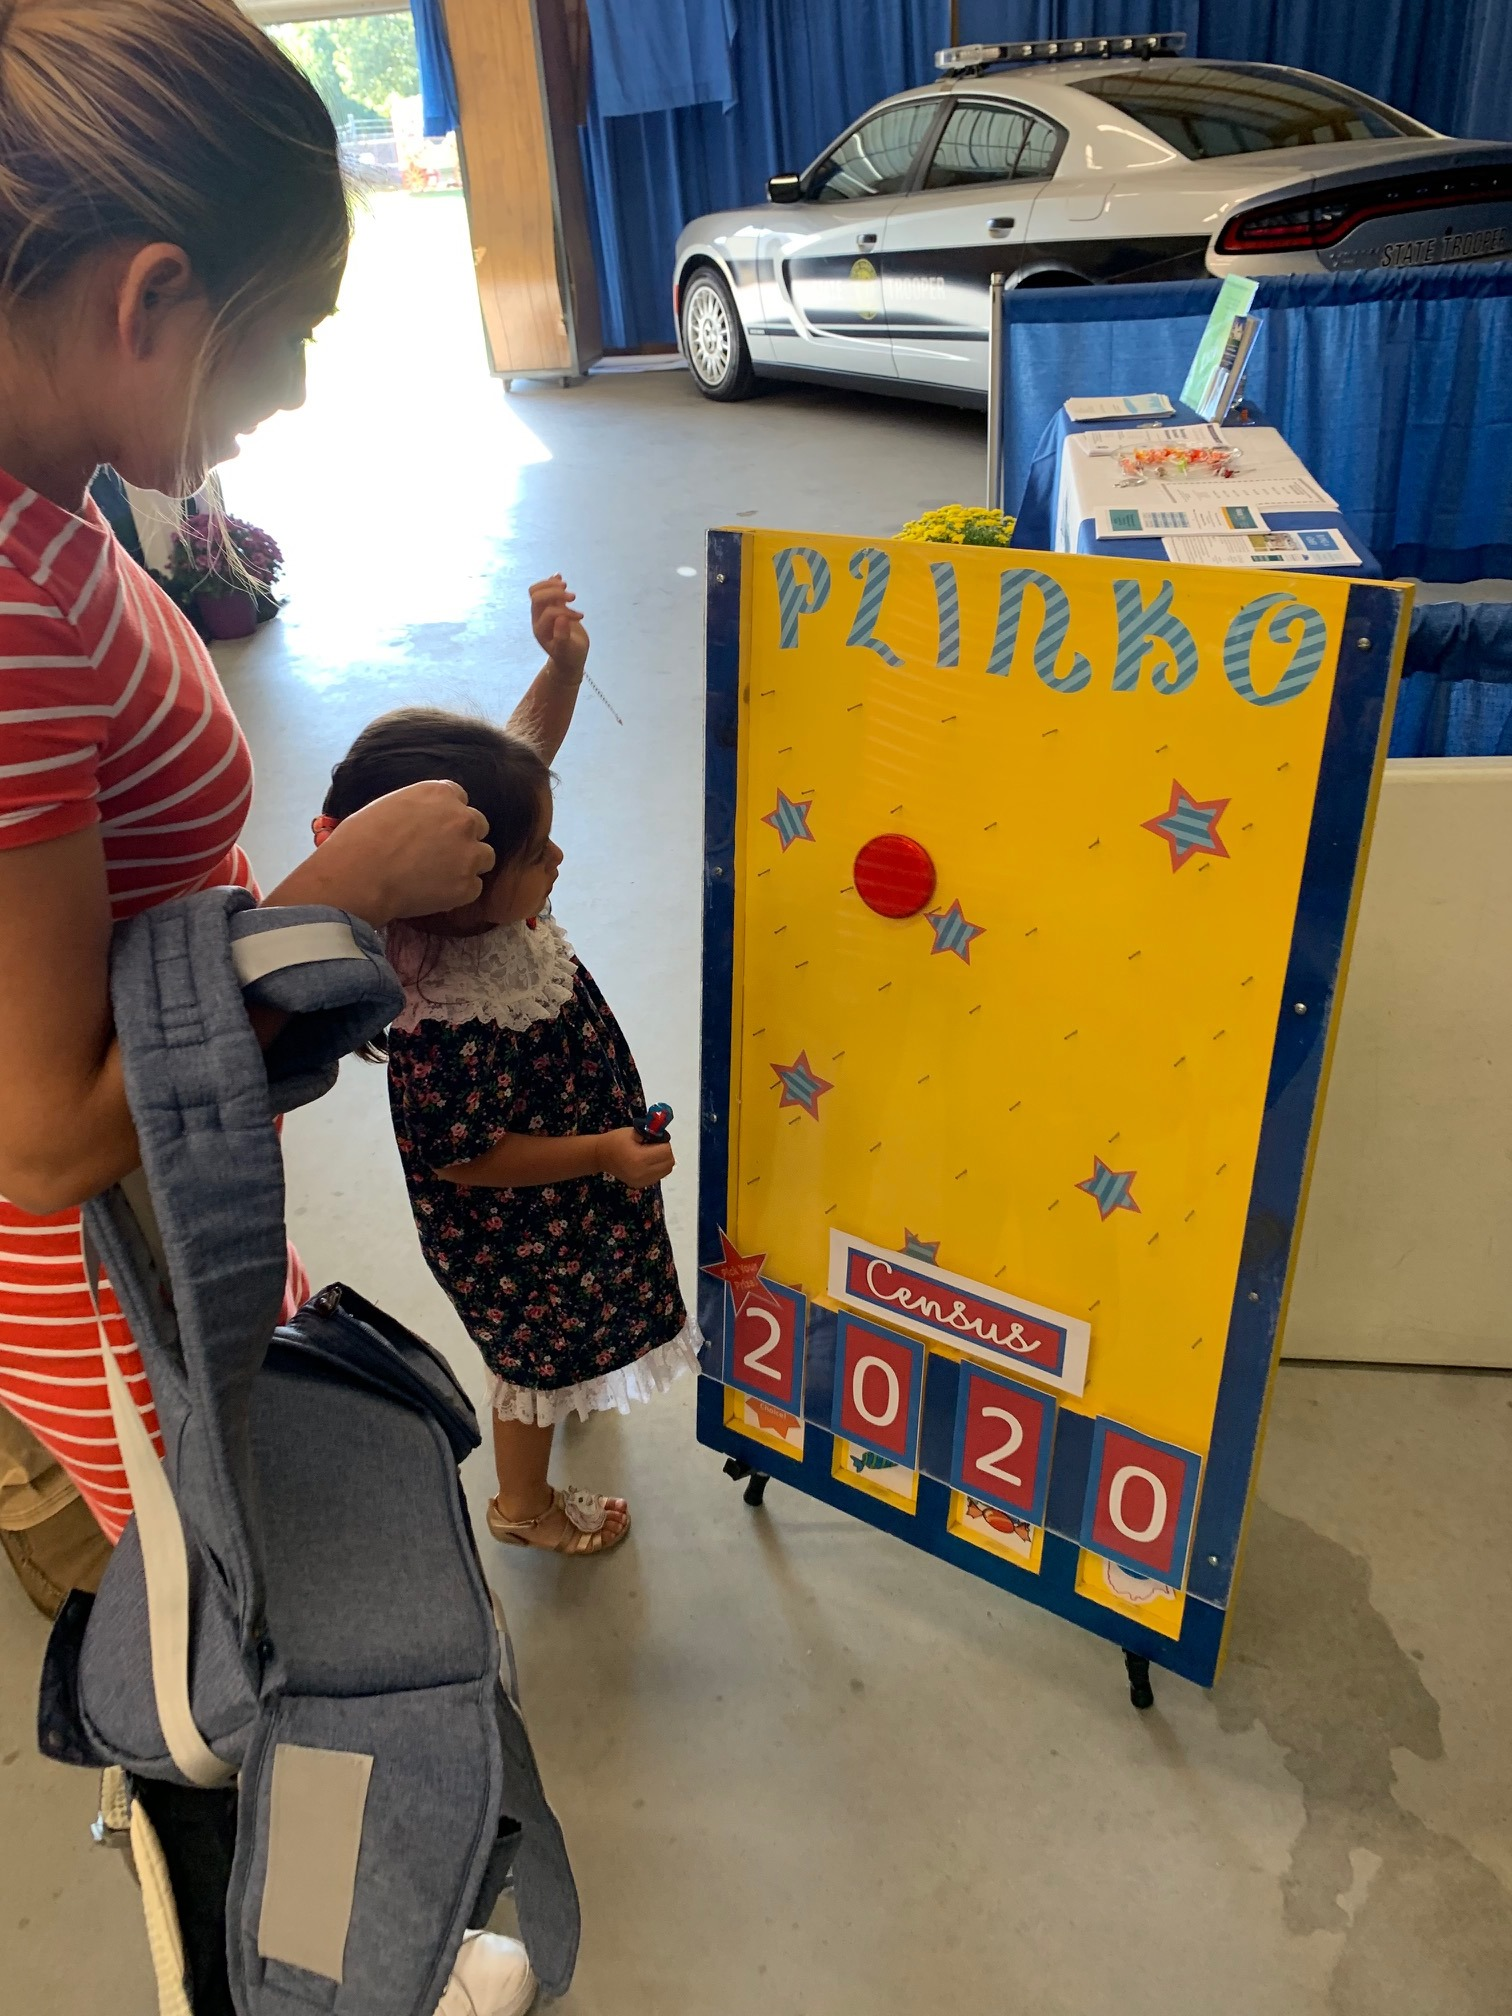 Small child playing Census 2020 Plinko game